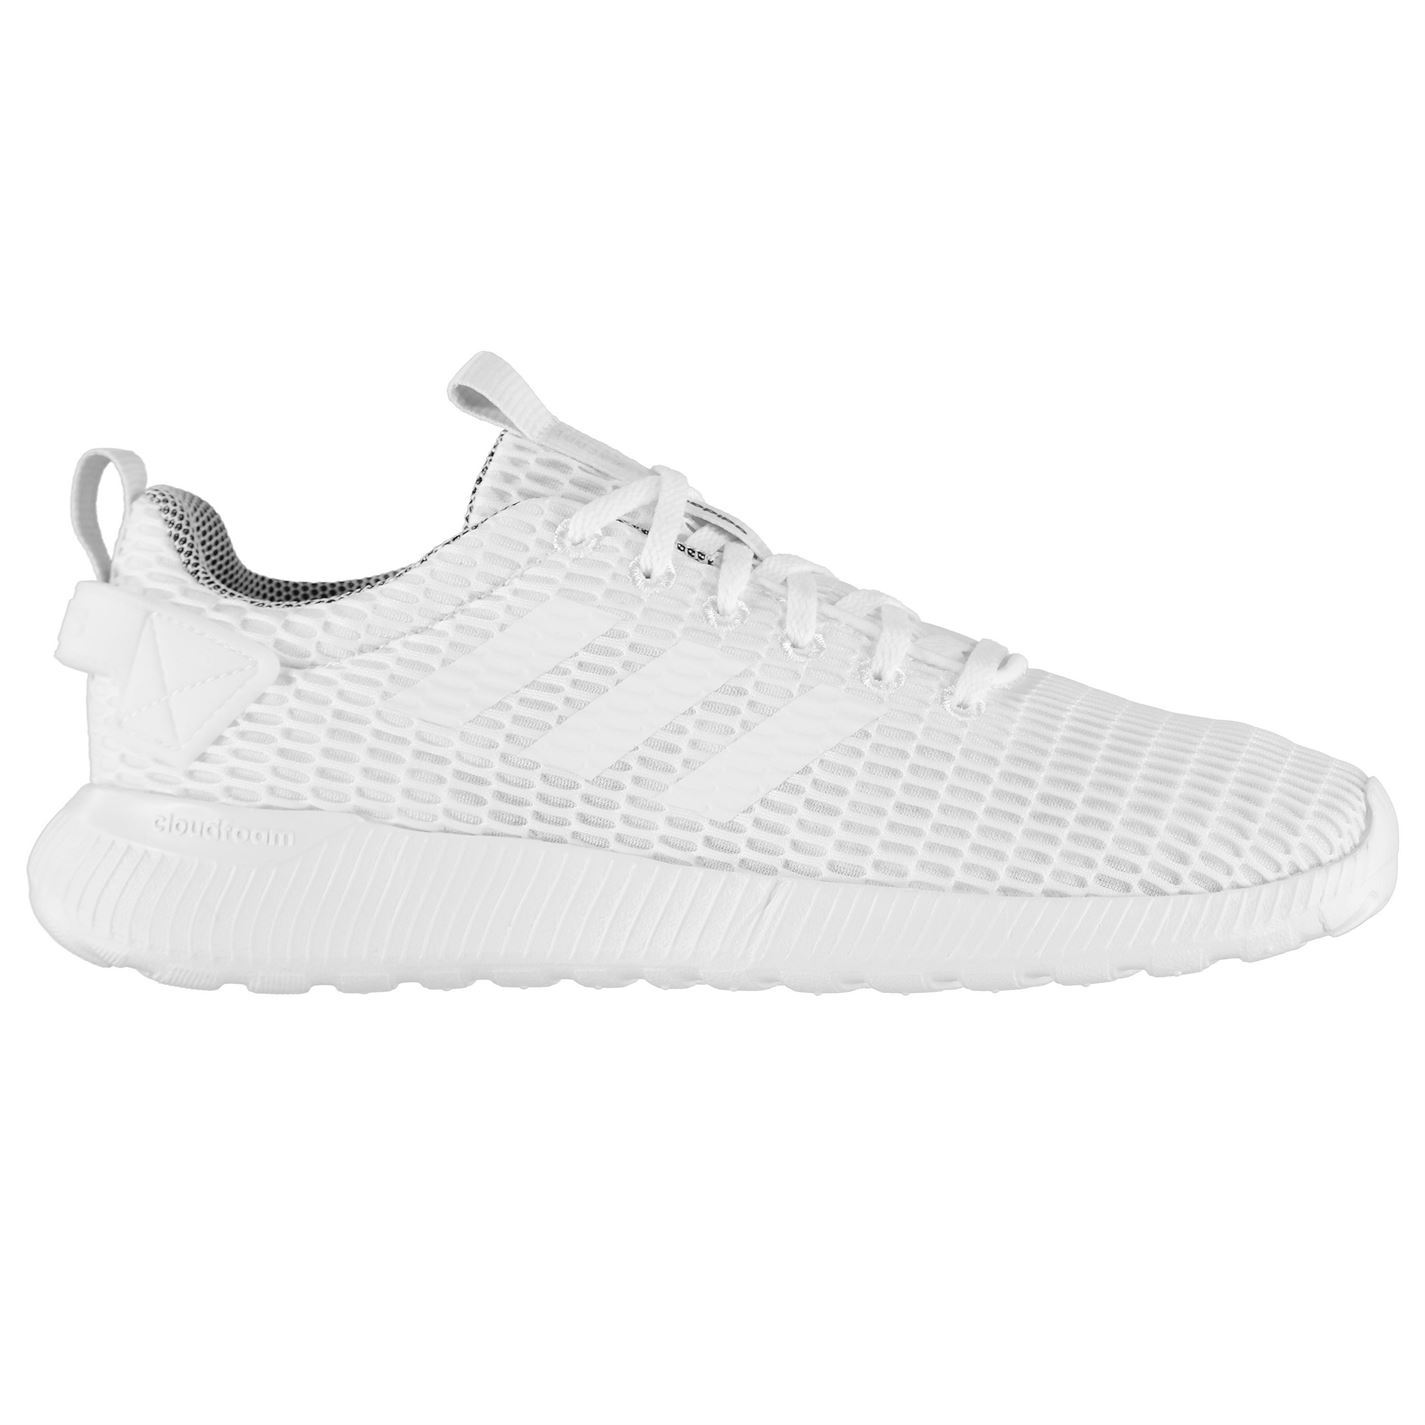 20e15795937f47 ... adidas Cloudfoam Lite Racer Trainers Mens White Sneakers Sports Shoes  ...